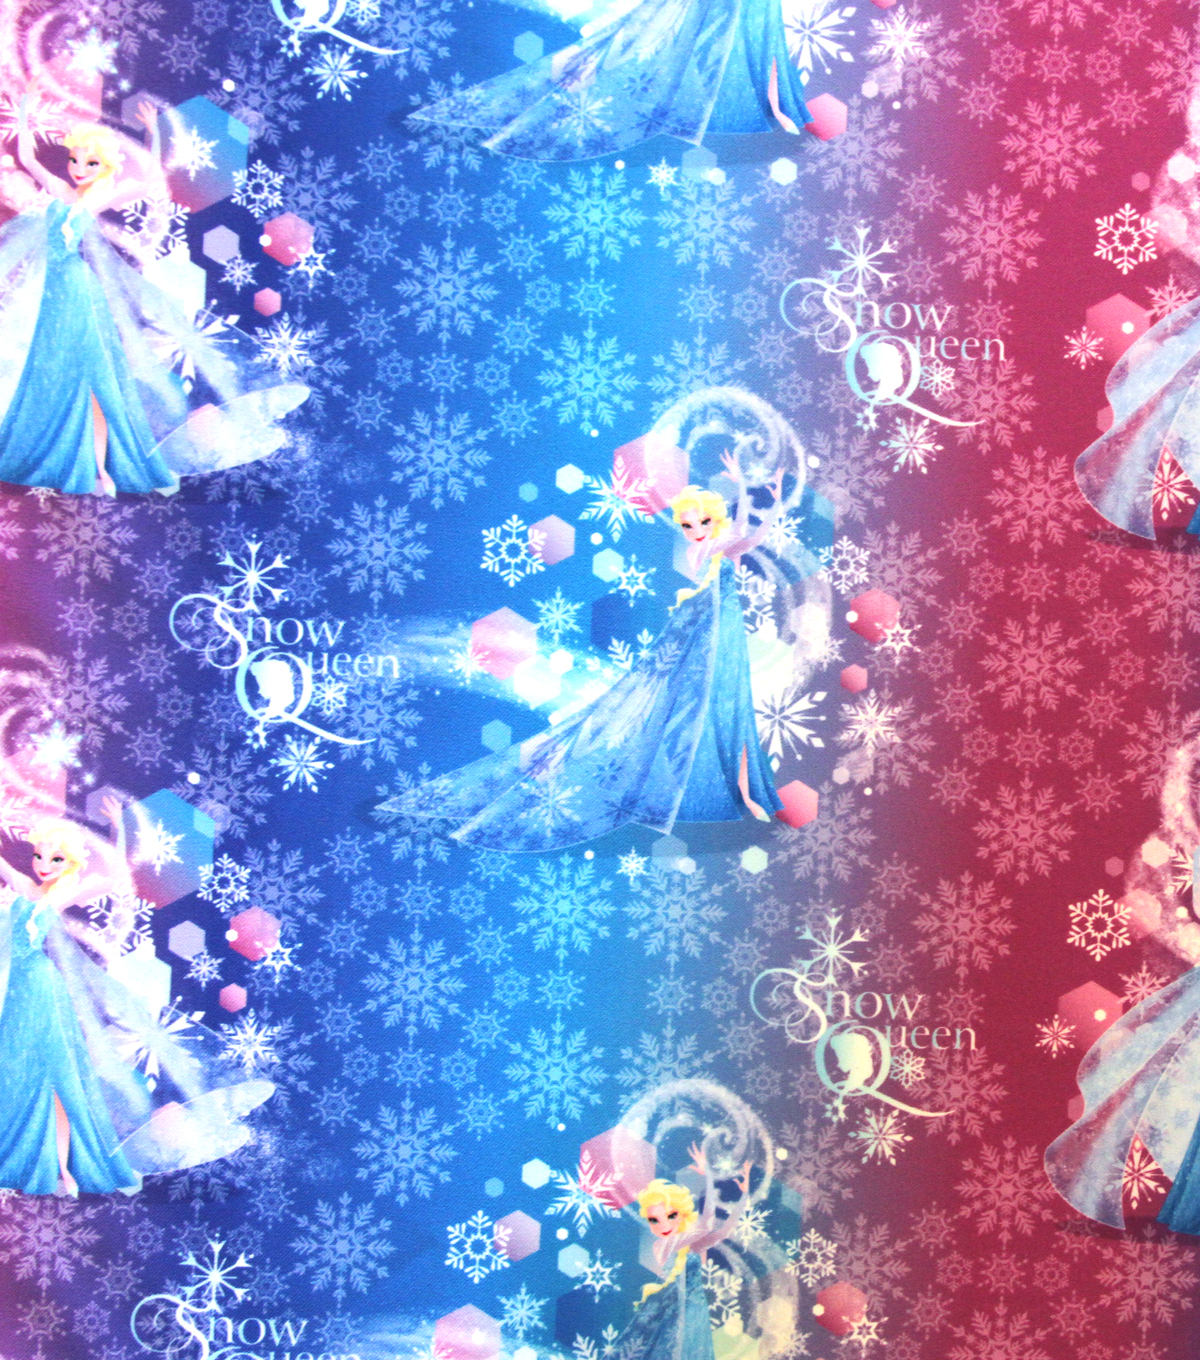 Elsa the Snow Queen Fabric from Joann Fabric and Crafts